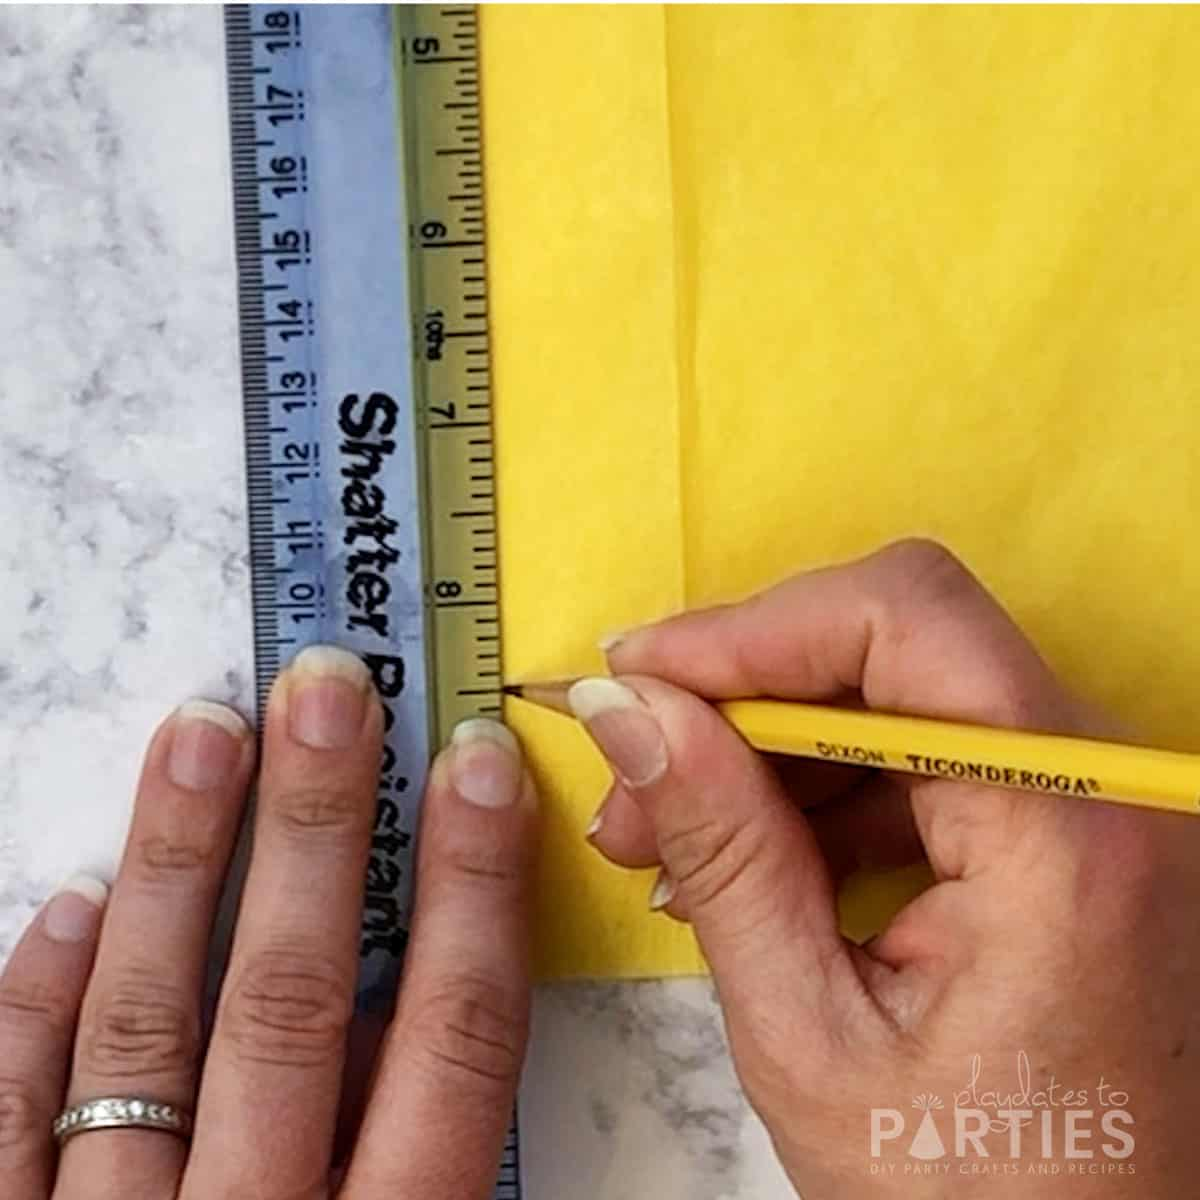 step 2 - measuring and marking 8 and one half inches from the top of the folded tissue paper